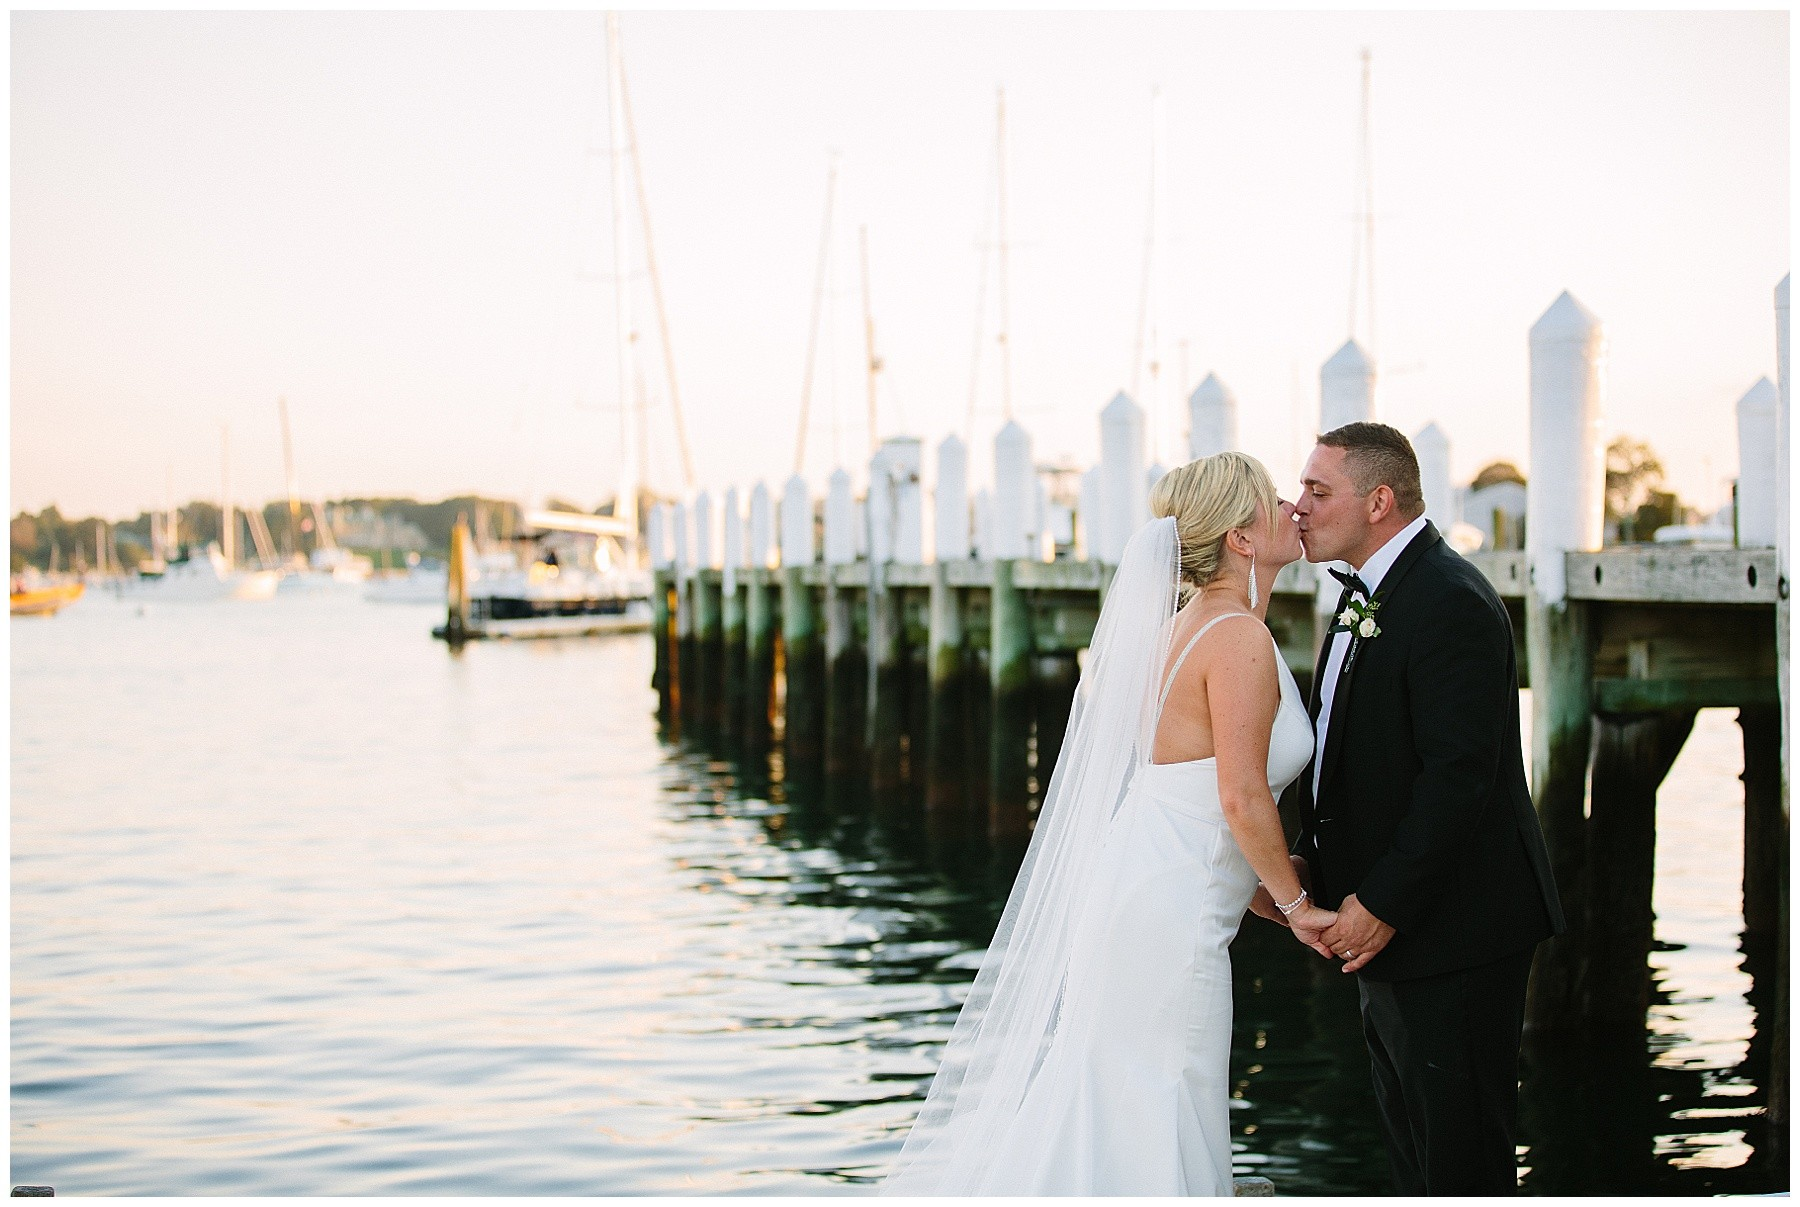 Mike And Jessica S Regatta Place Wedding Newport Rhode Island